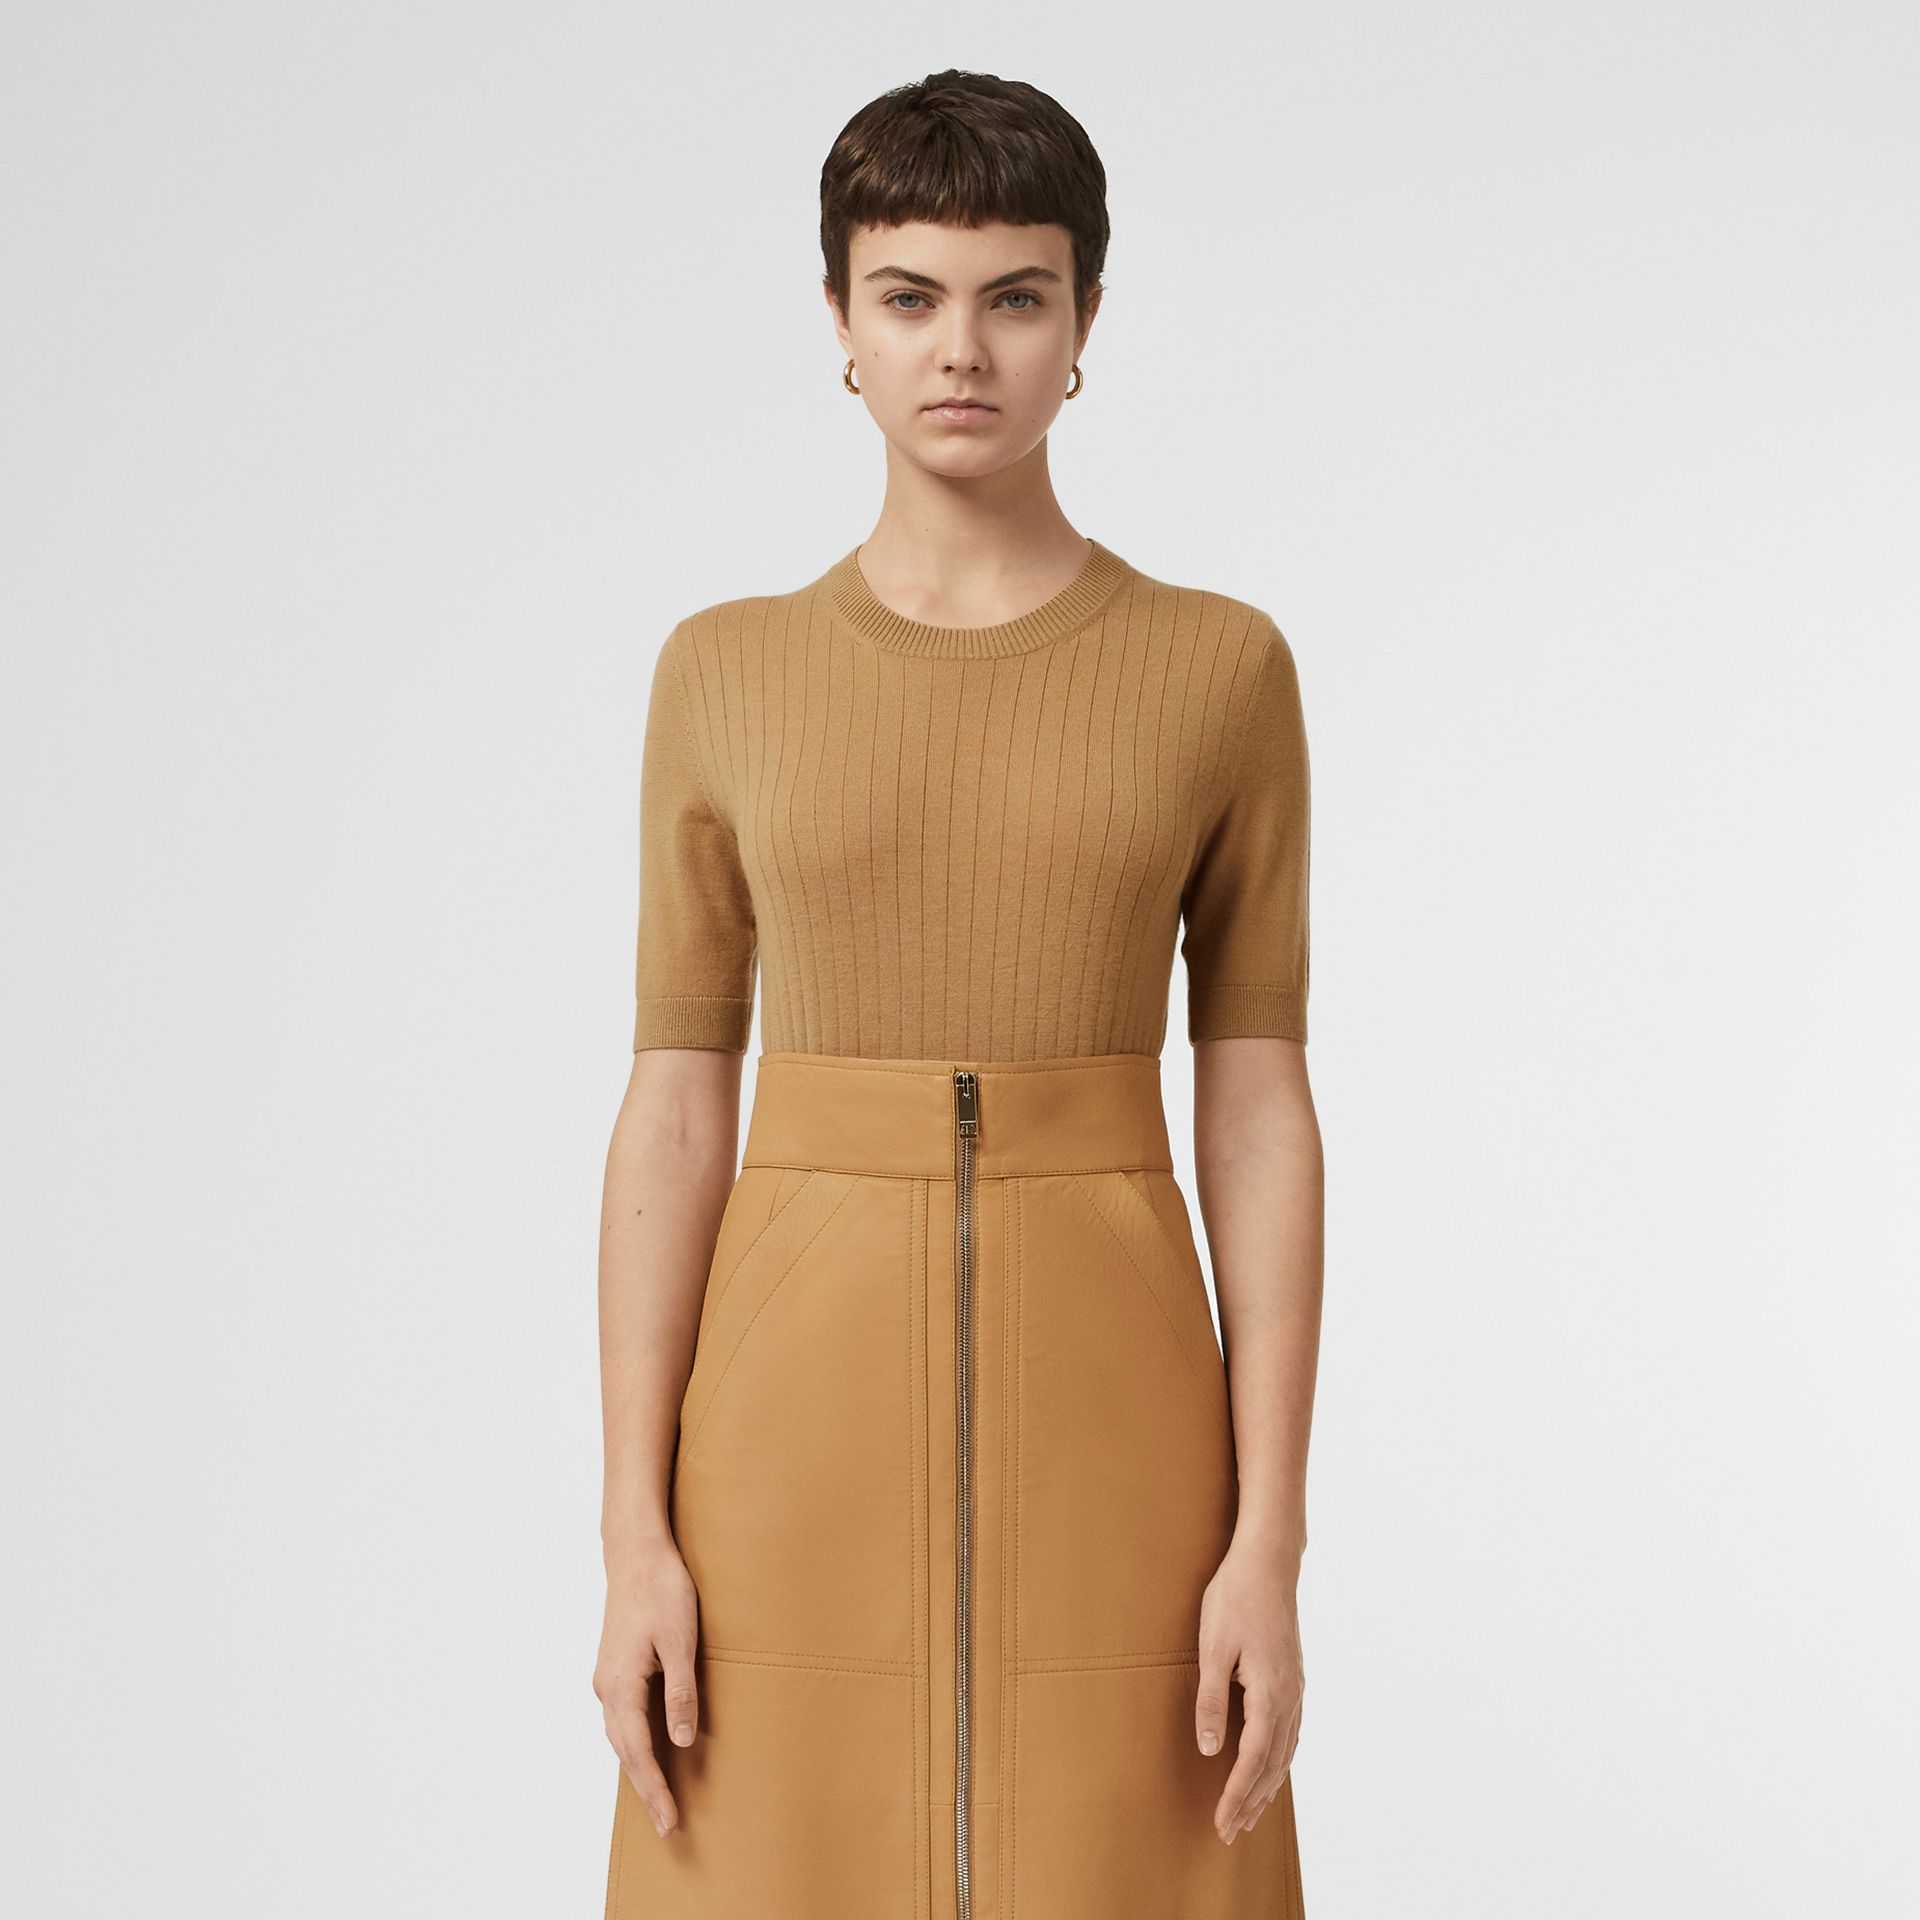 Short-sleeve Rib Knit Cashmere Sweater in Camel - Women | Burberry Singapore - gallery image 6